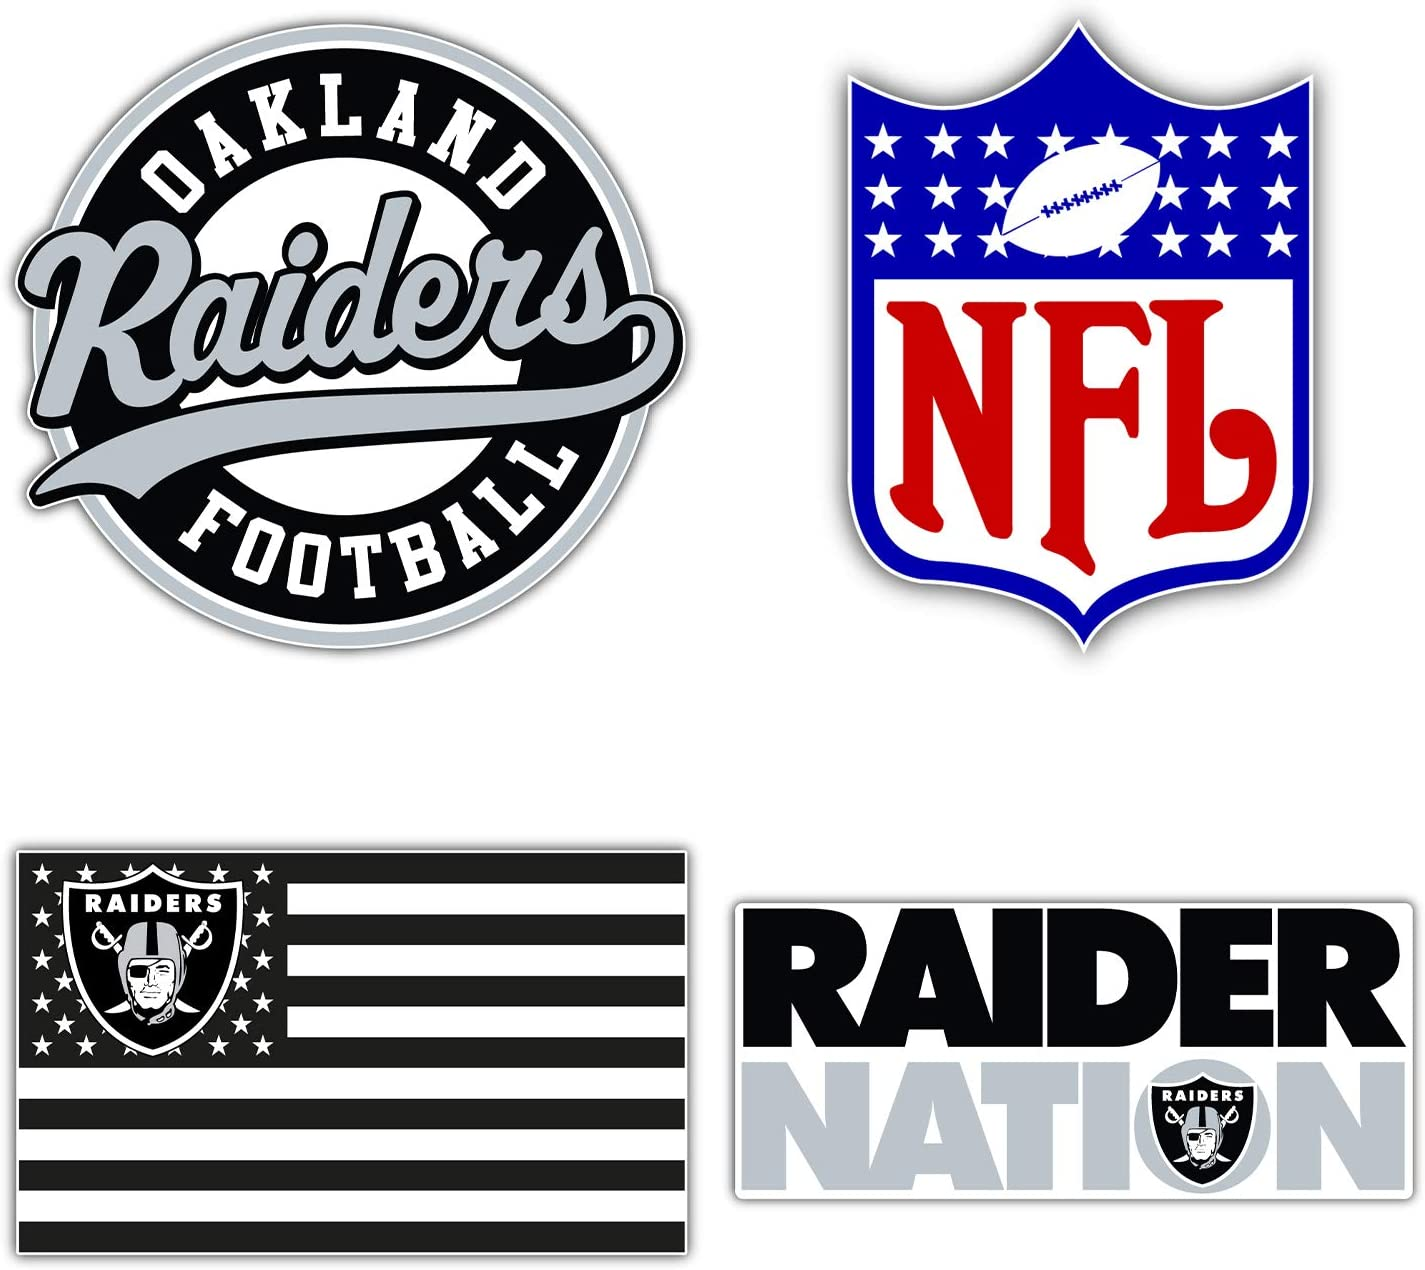 qualityprint Oakland Raiders Set of 4 NFL Football Car Bumper Stickers Decals 5 Longer Side